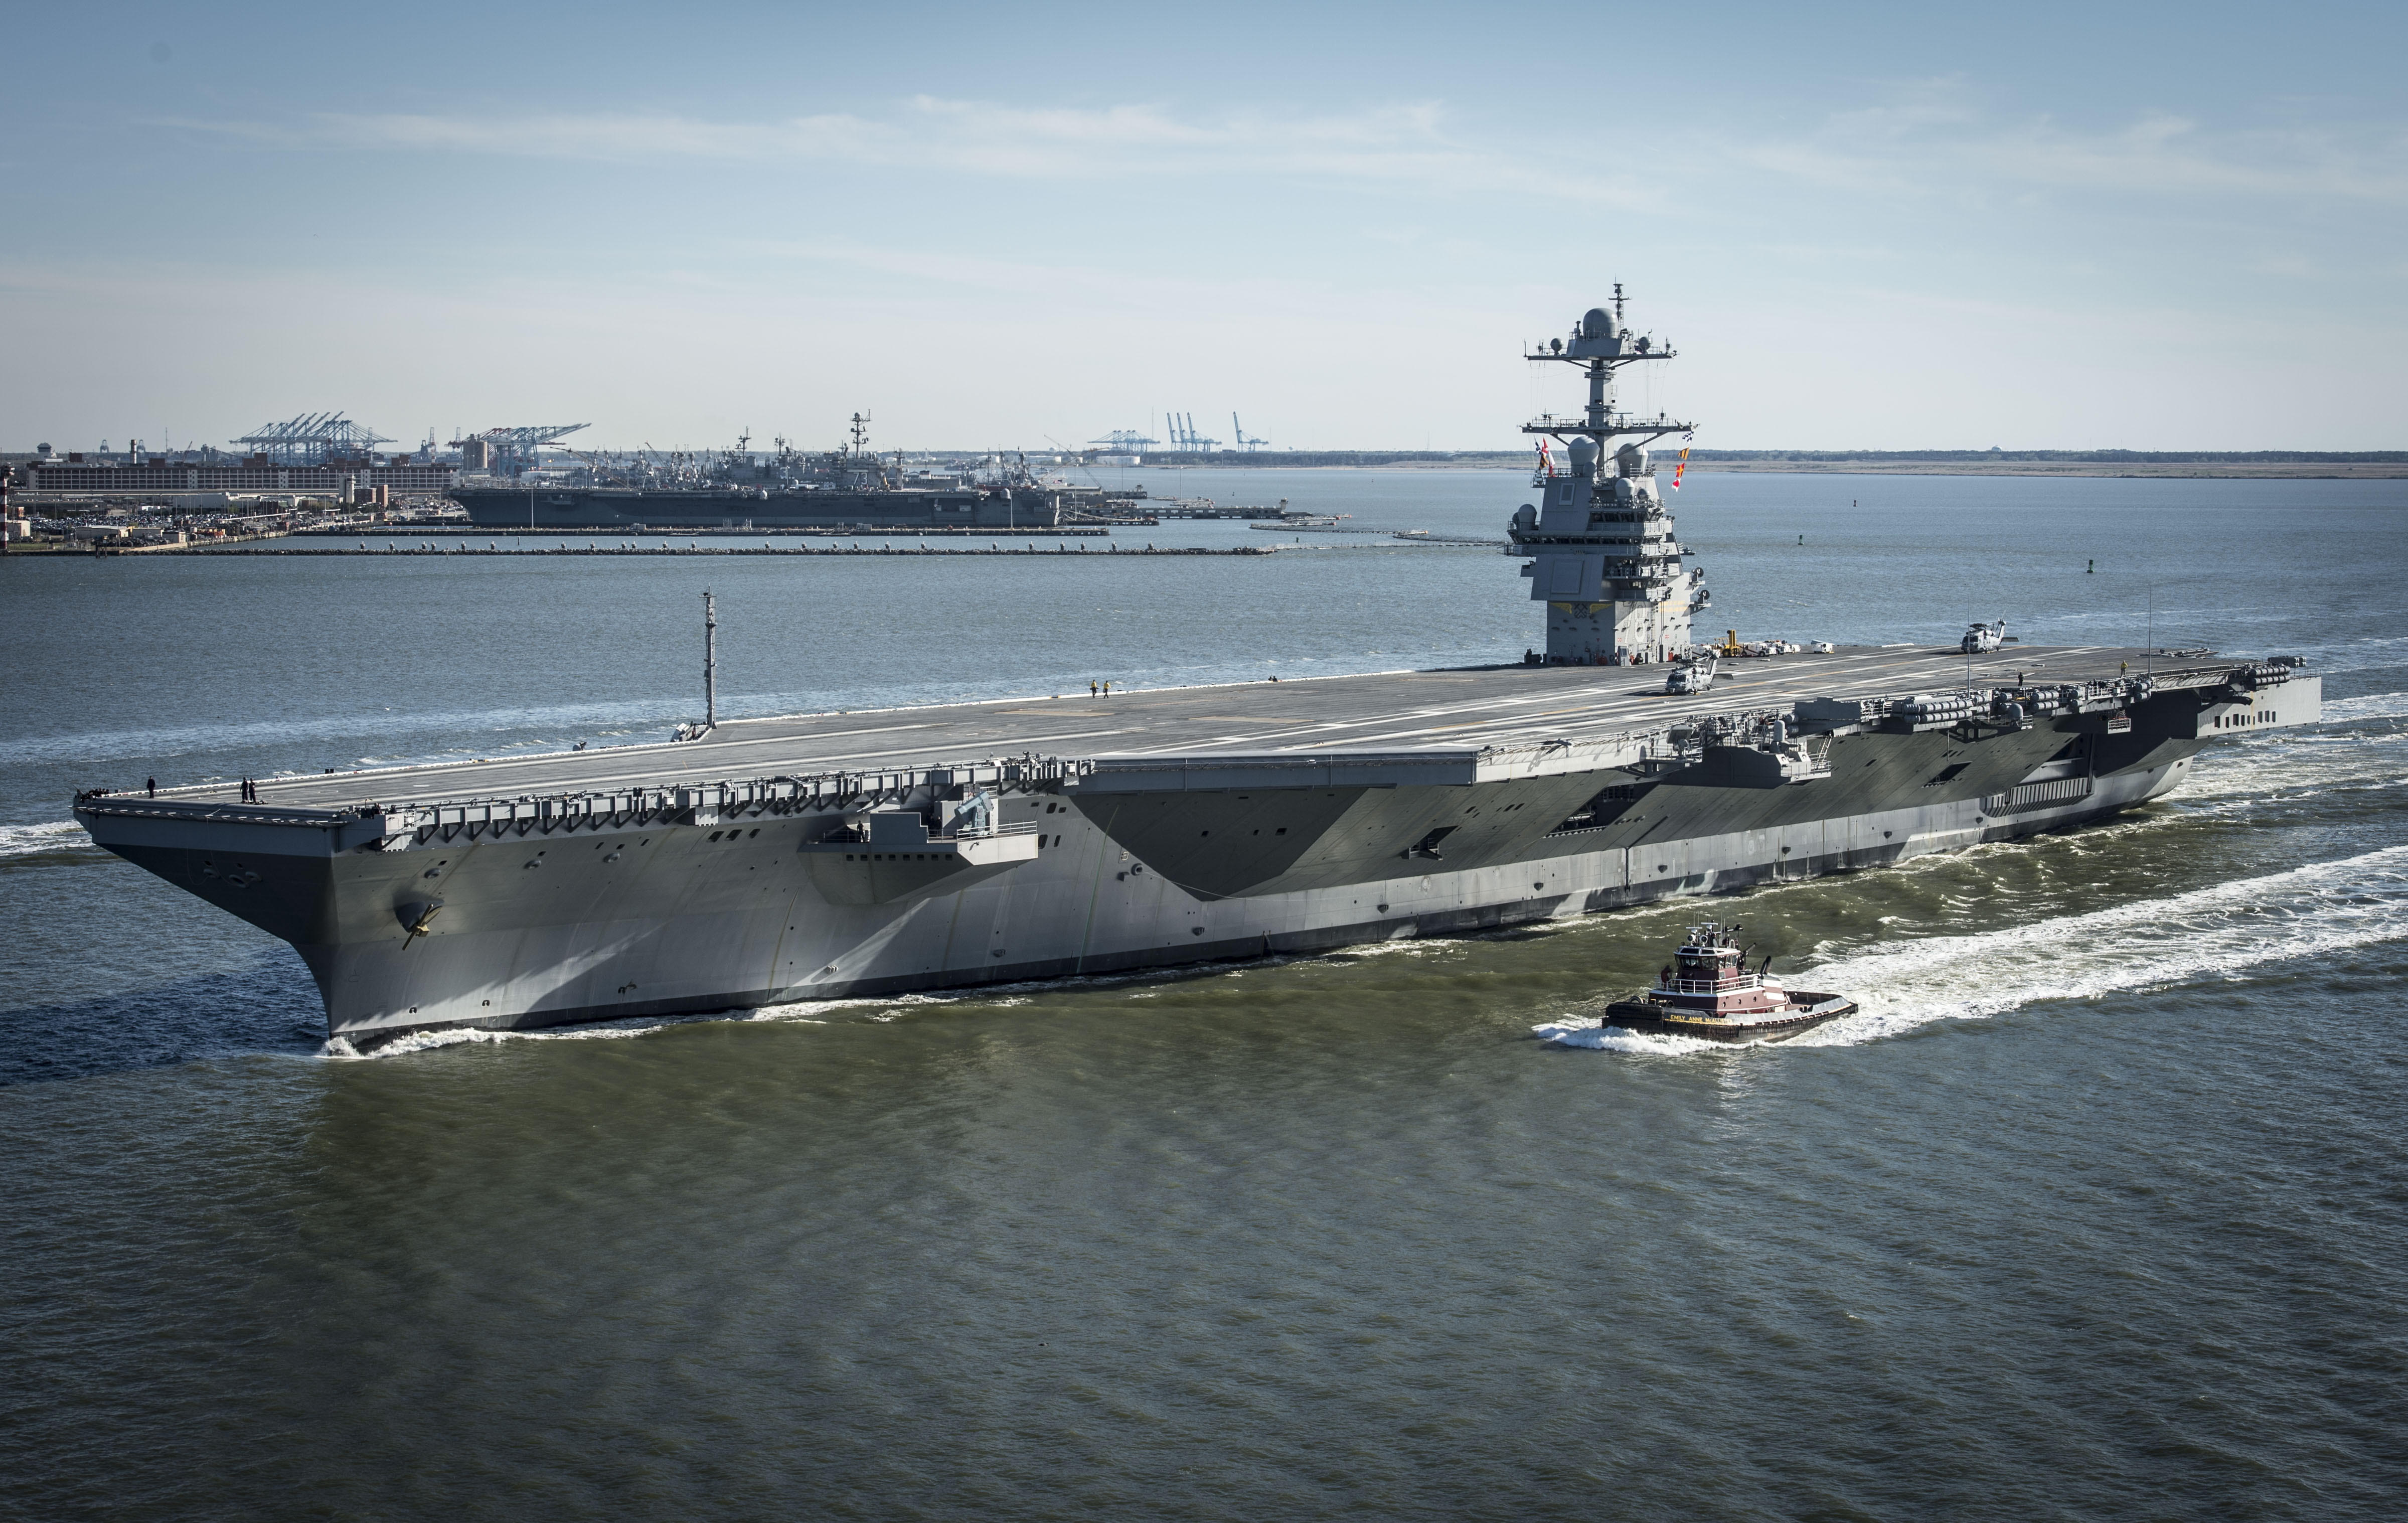 USS Gerald R. Ford CVN 78 underway on 8 April 2017 - The US Navy may skip an important test so it can get its futuristic new aircraft carrier sooner